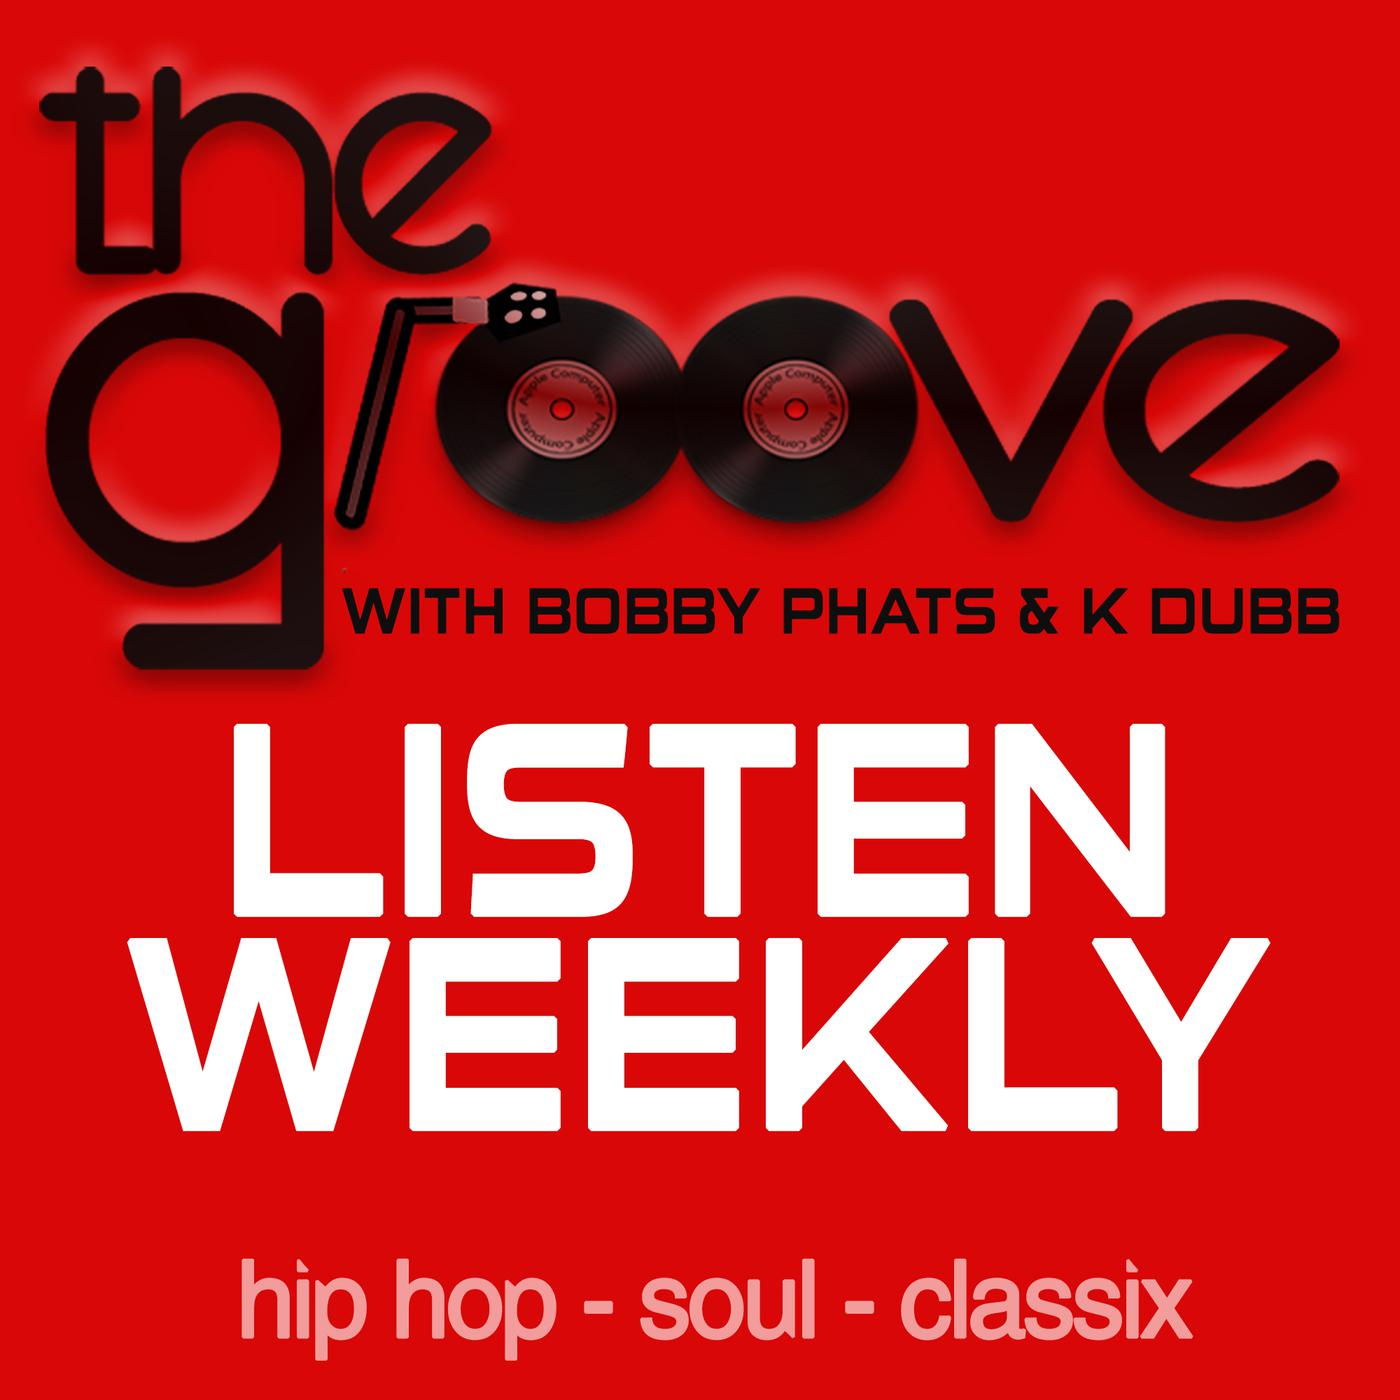 CLASSIC GROOVE! - with guests Mr. Wired Up and PKT